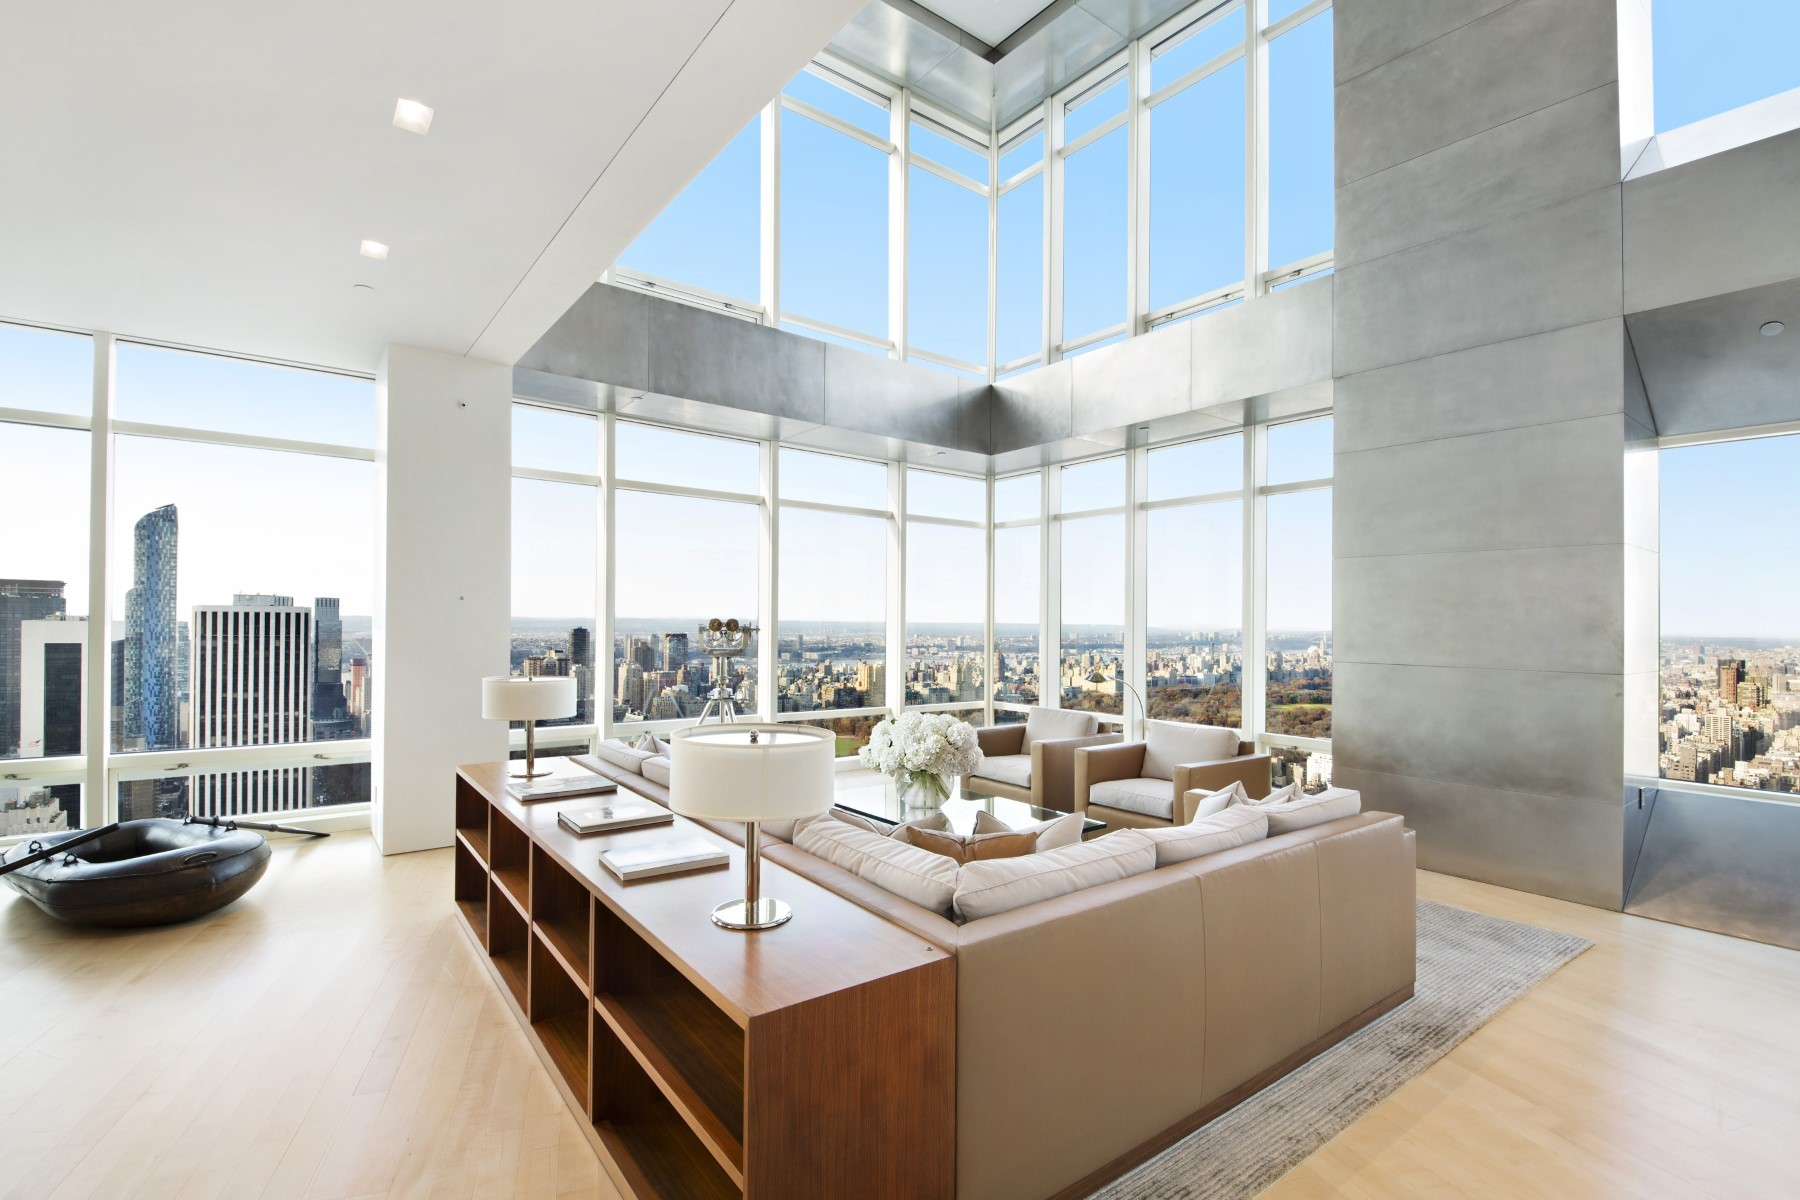 4 Bedroom Apartment Nyc Set Property Cool Phenomenal $82 Million Penthouse Apartment In New York City For . Review